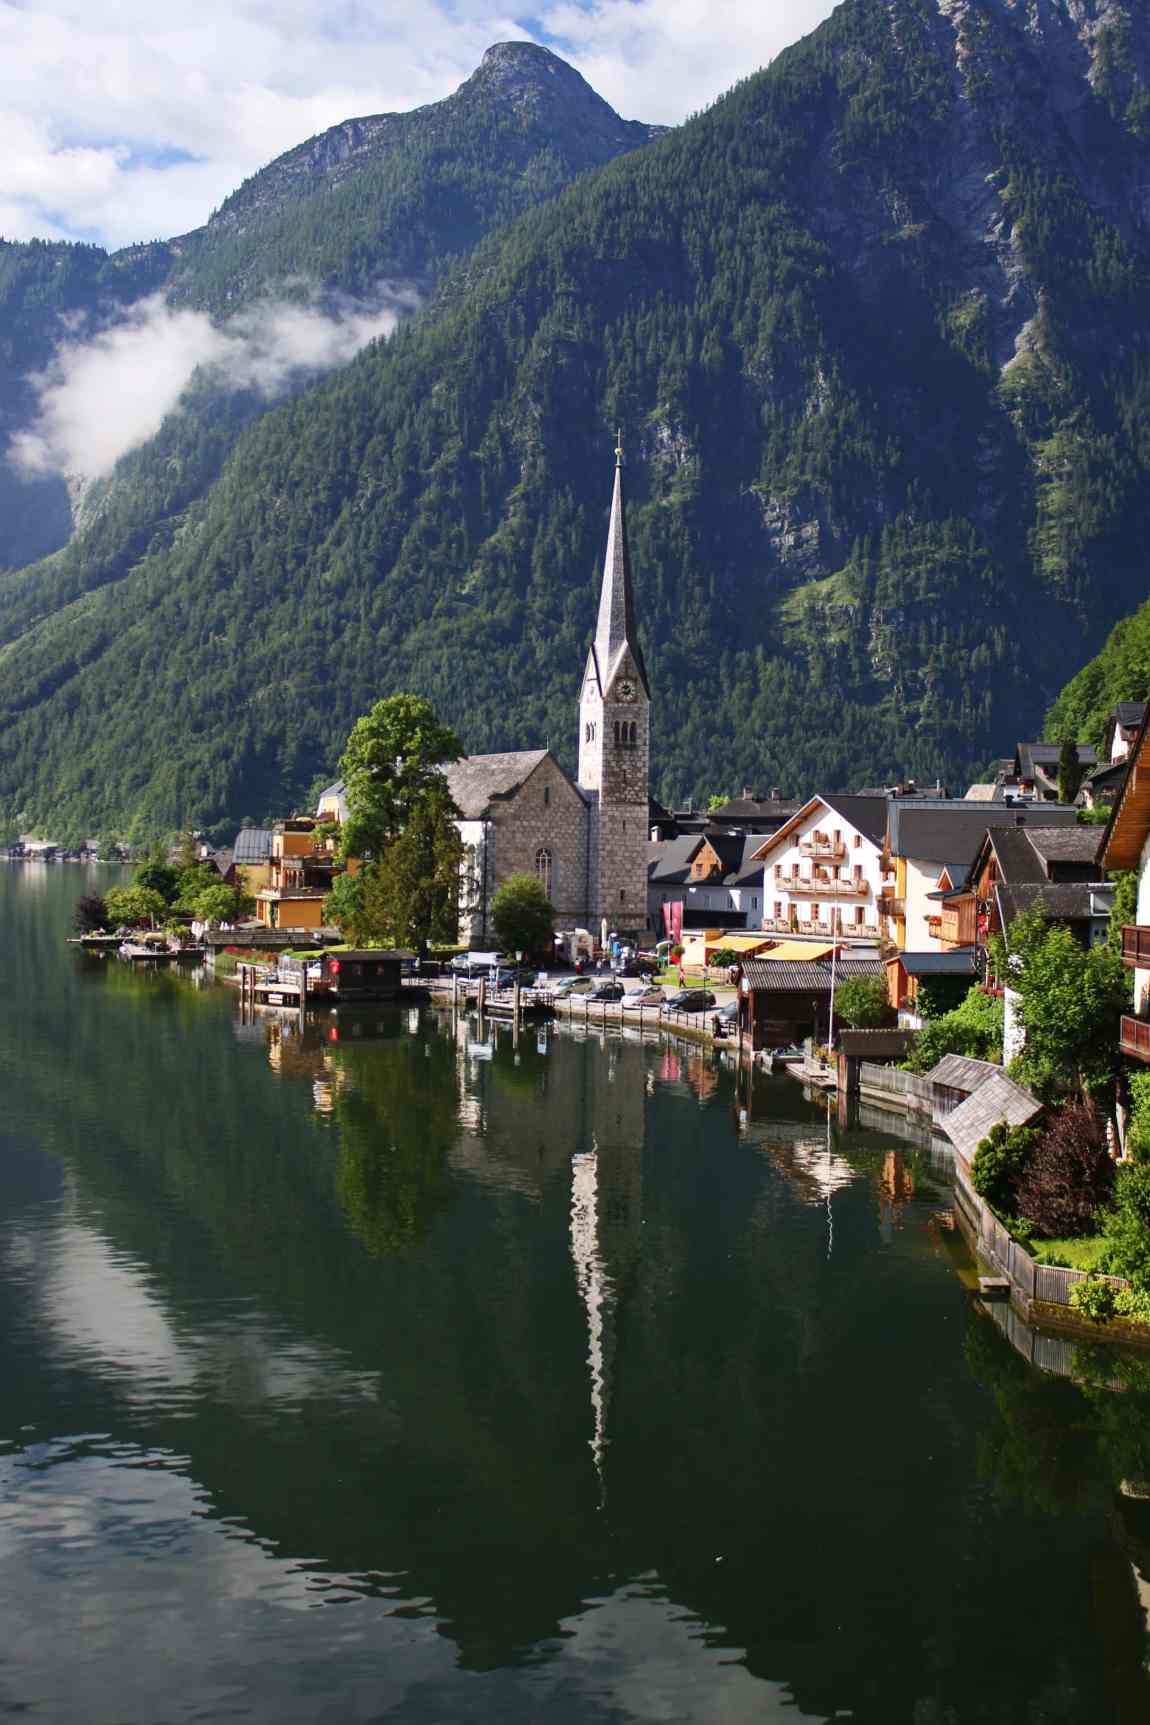 Classic view of the beautiful town of Hallstatt form a popular photography spot